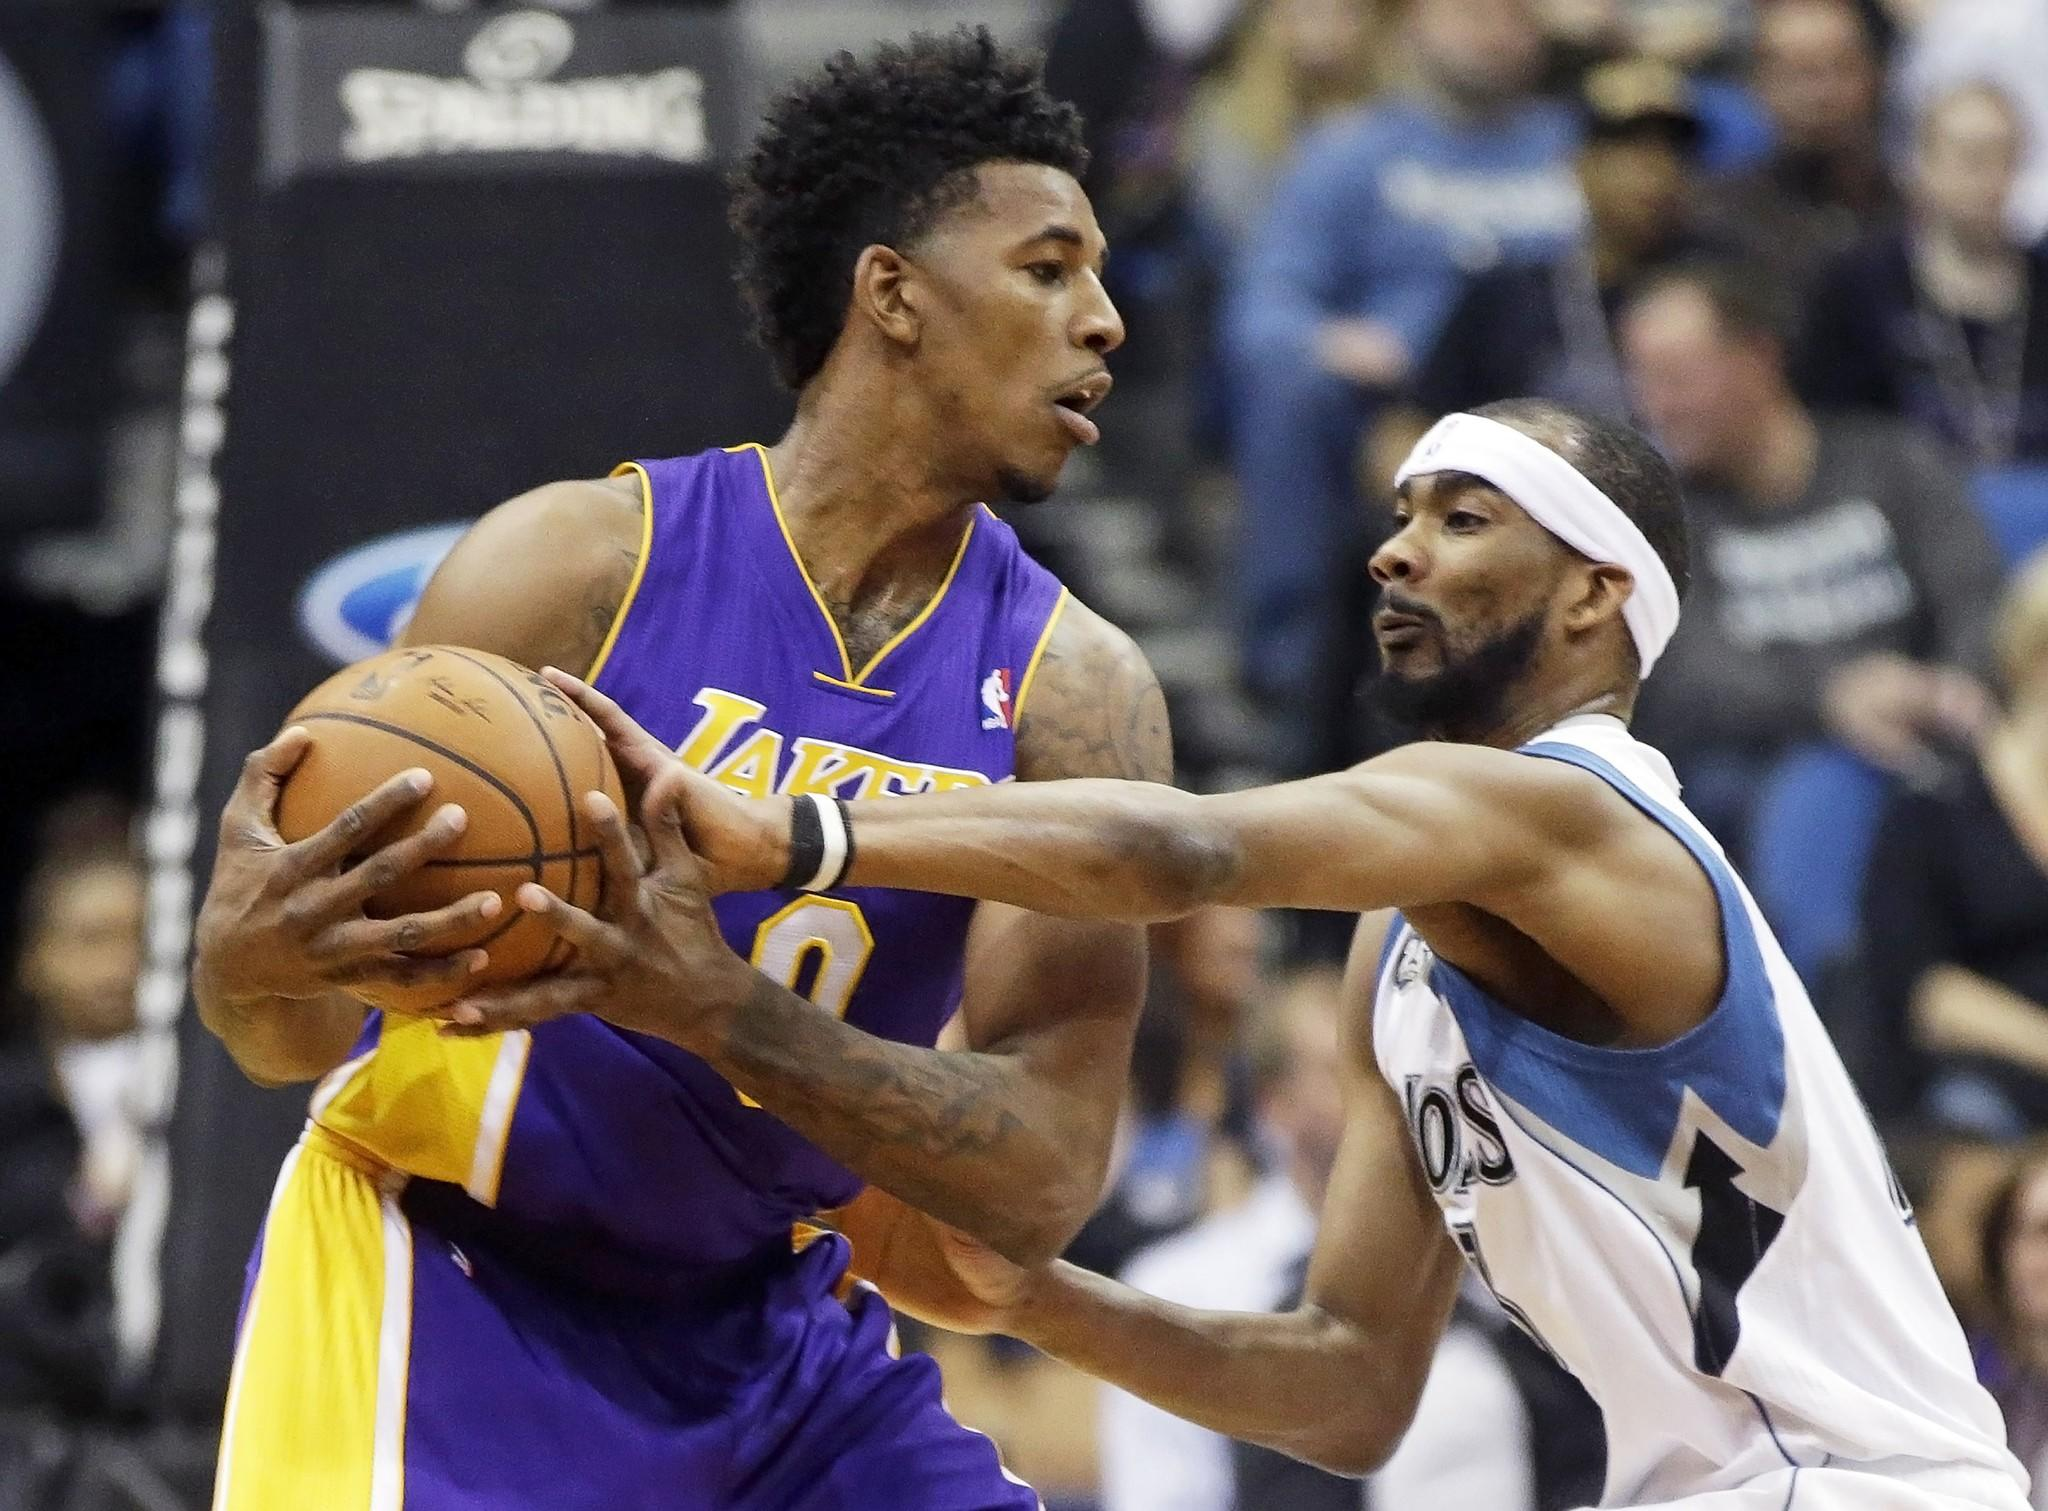 Nick Young tries to keep the ball away from Minnesota's Corey Brewer during the first quarter Tuesday at the Target Center in Minneapolis. Young went down with a knee injury against Cleveland on Wednesday.